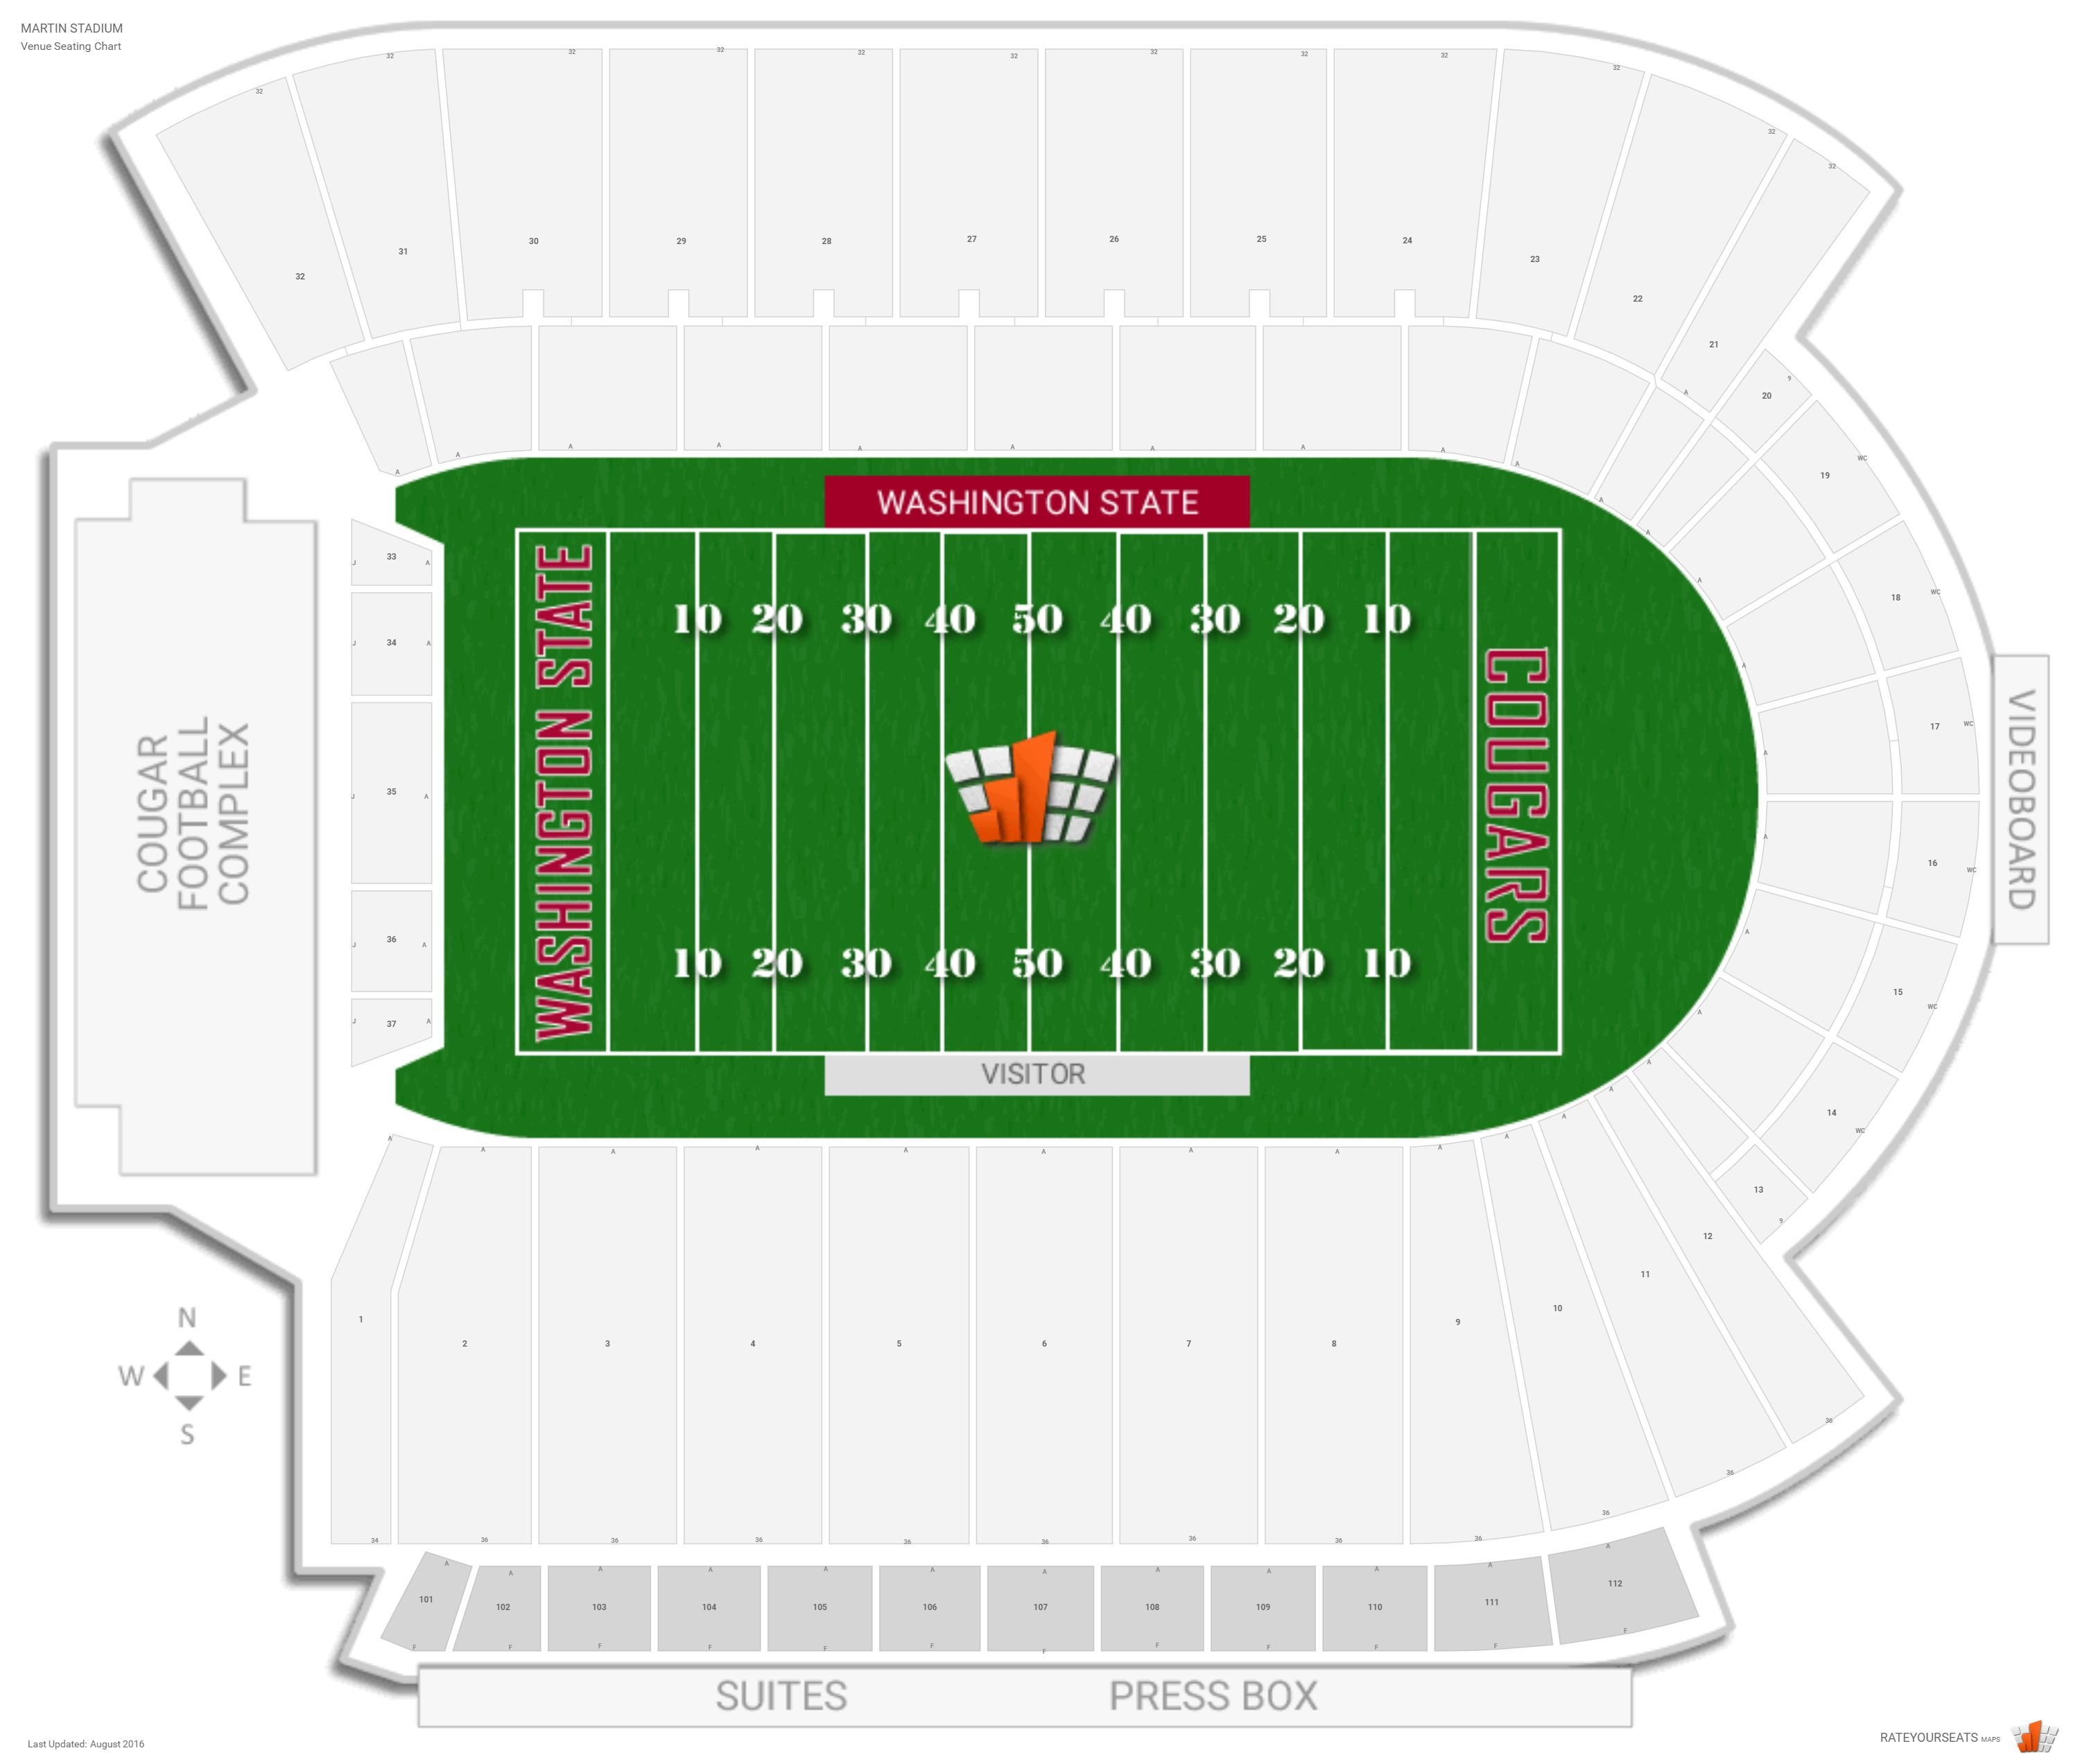 Martin Stadium Seating Chart with Row Numbers